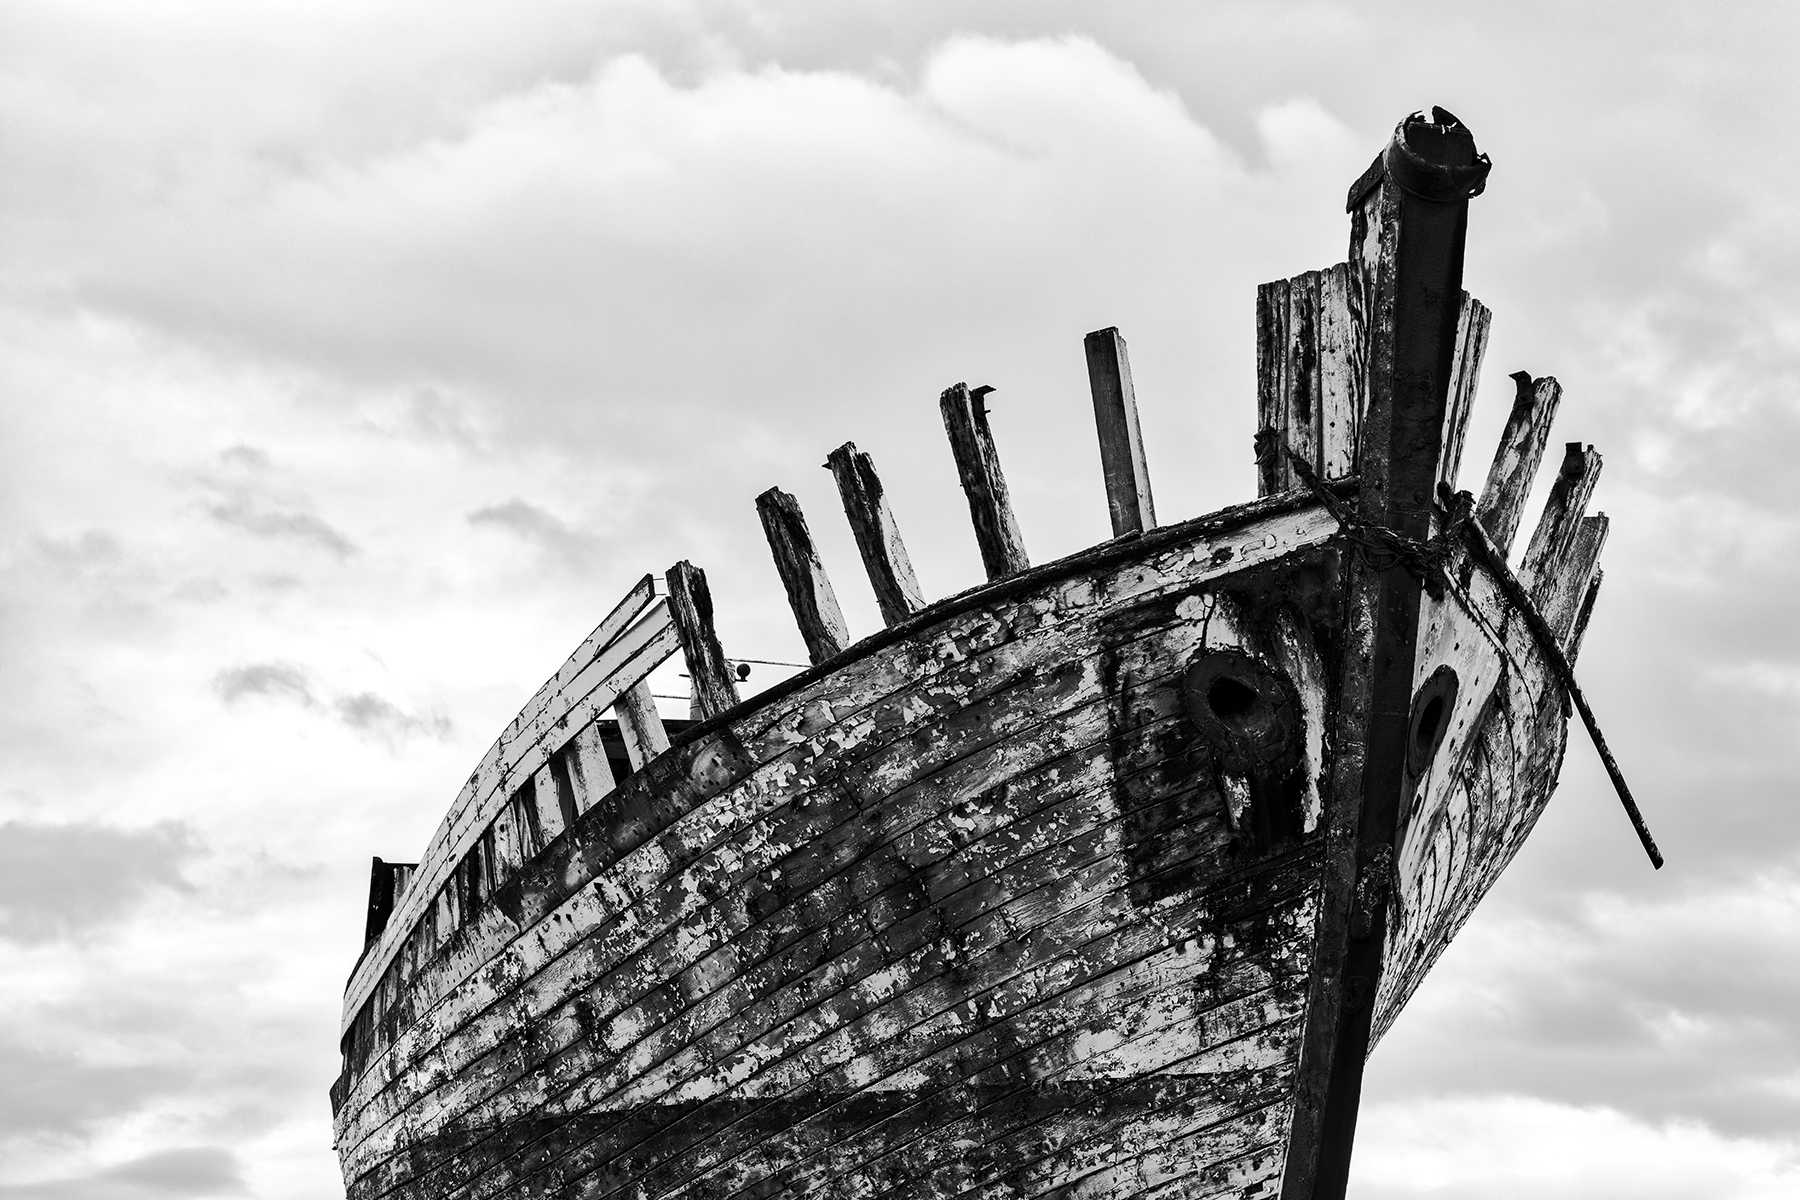 Akranes Shipwreck - Black & White, , Peeled, Rust, Rundown, HQ Photo